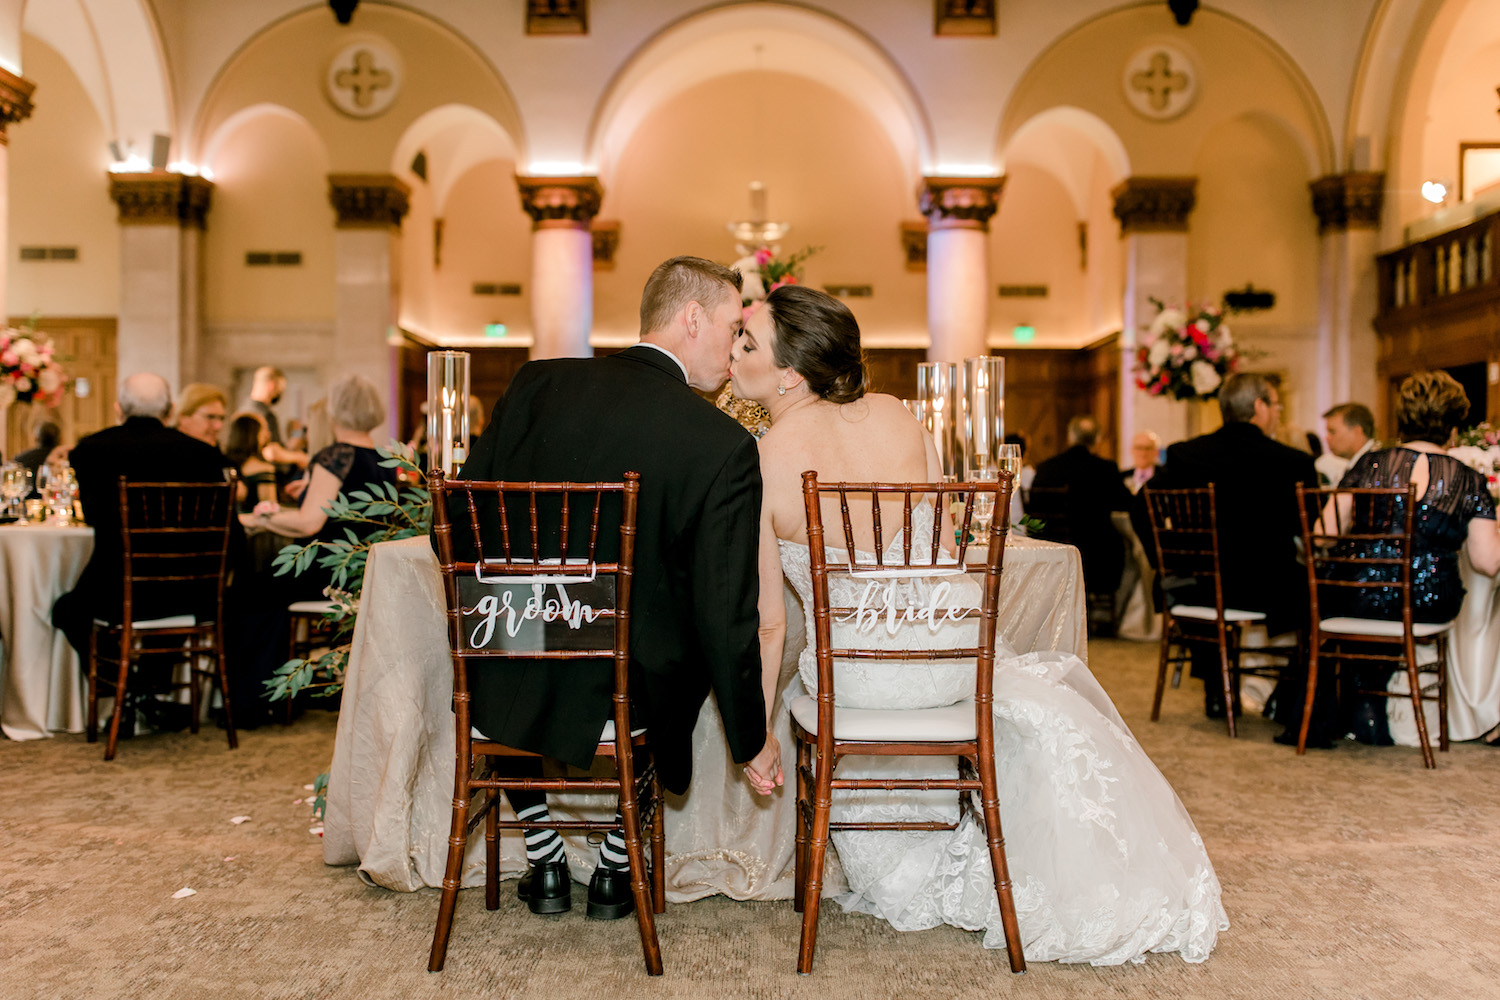 Bride and groom kissing at head table during City Flats Hotel wedding